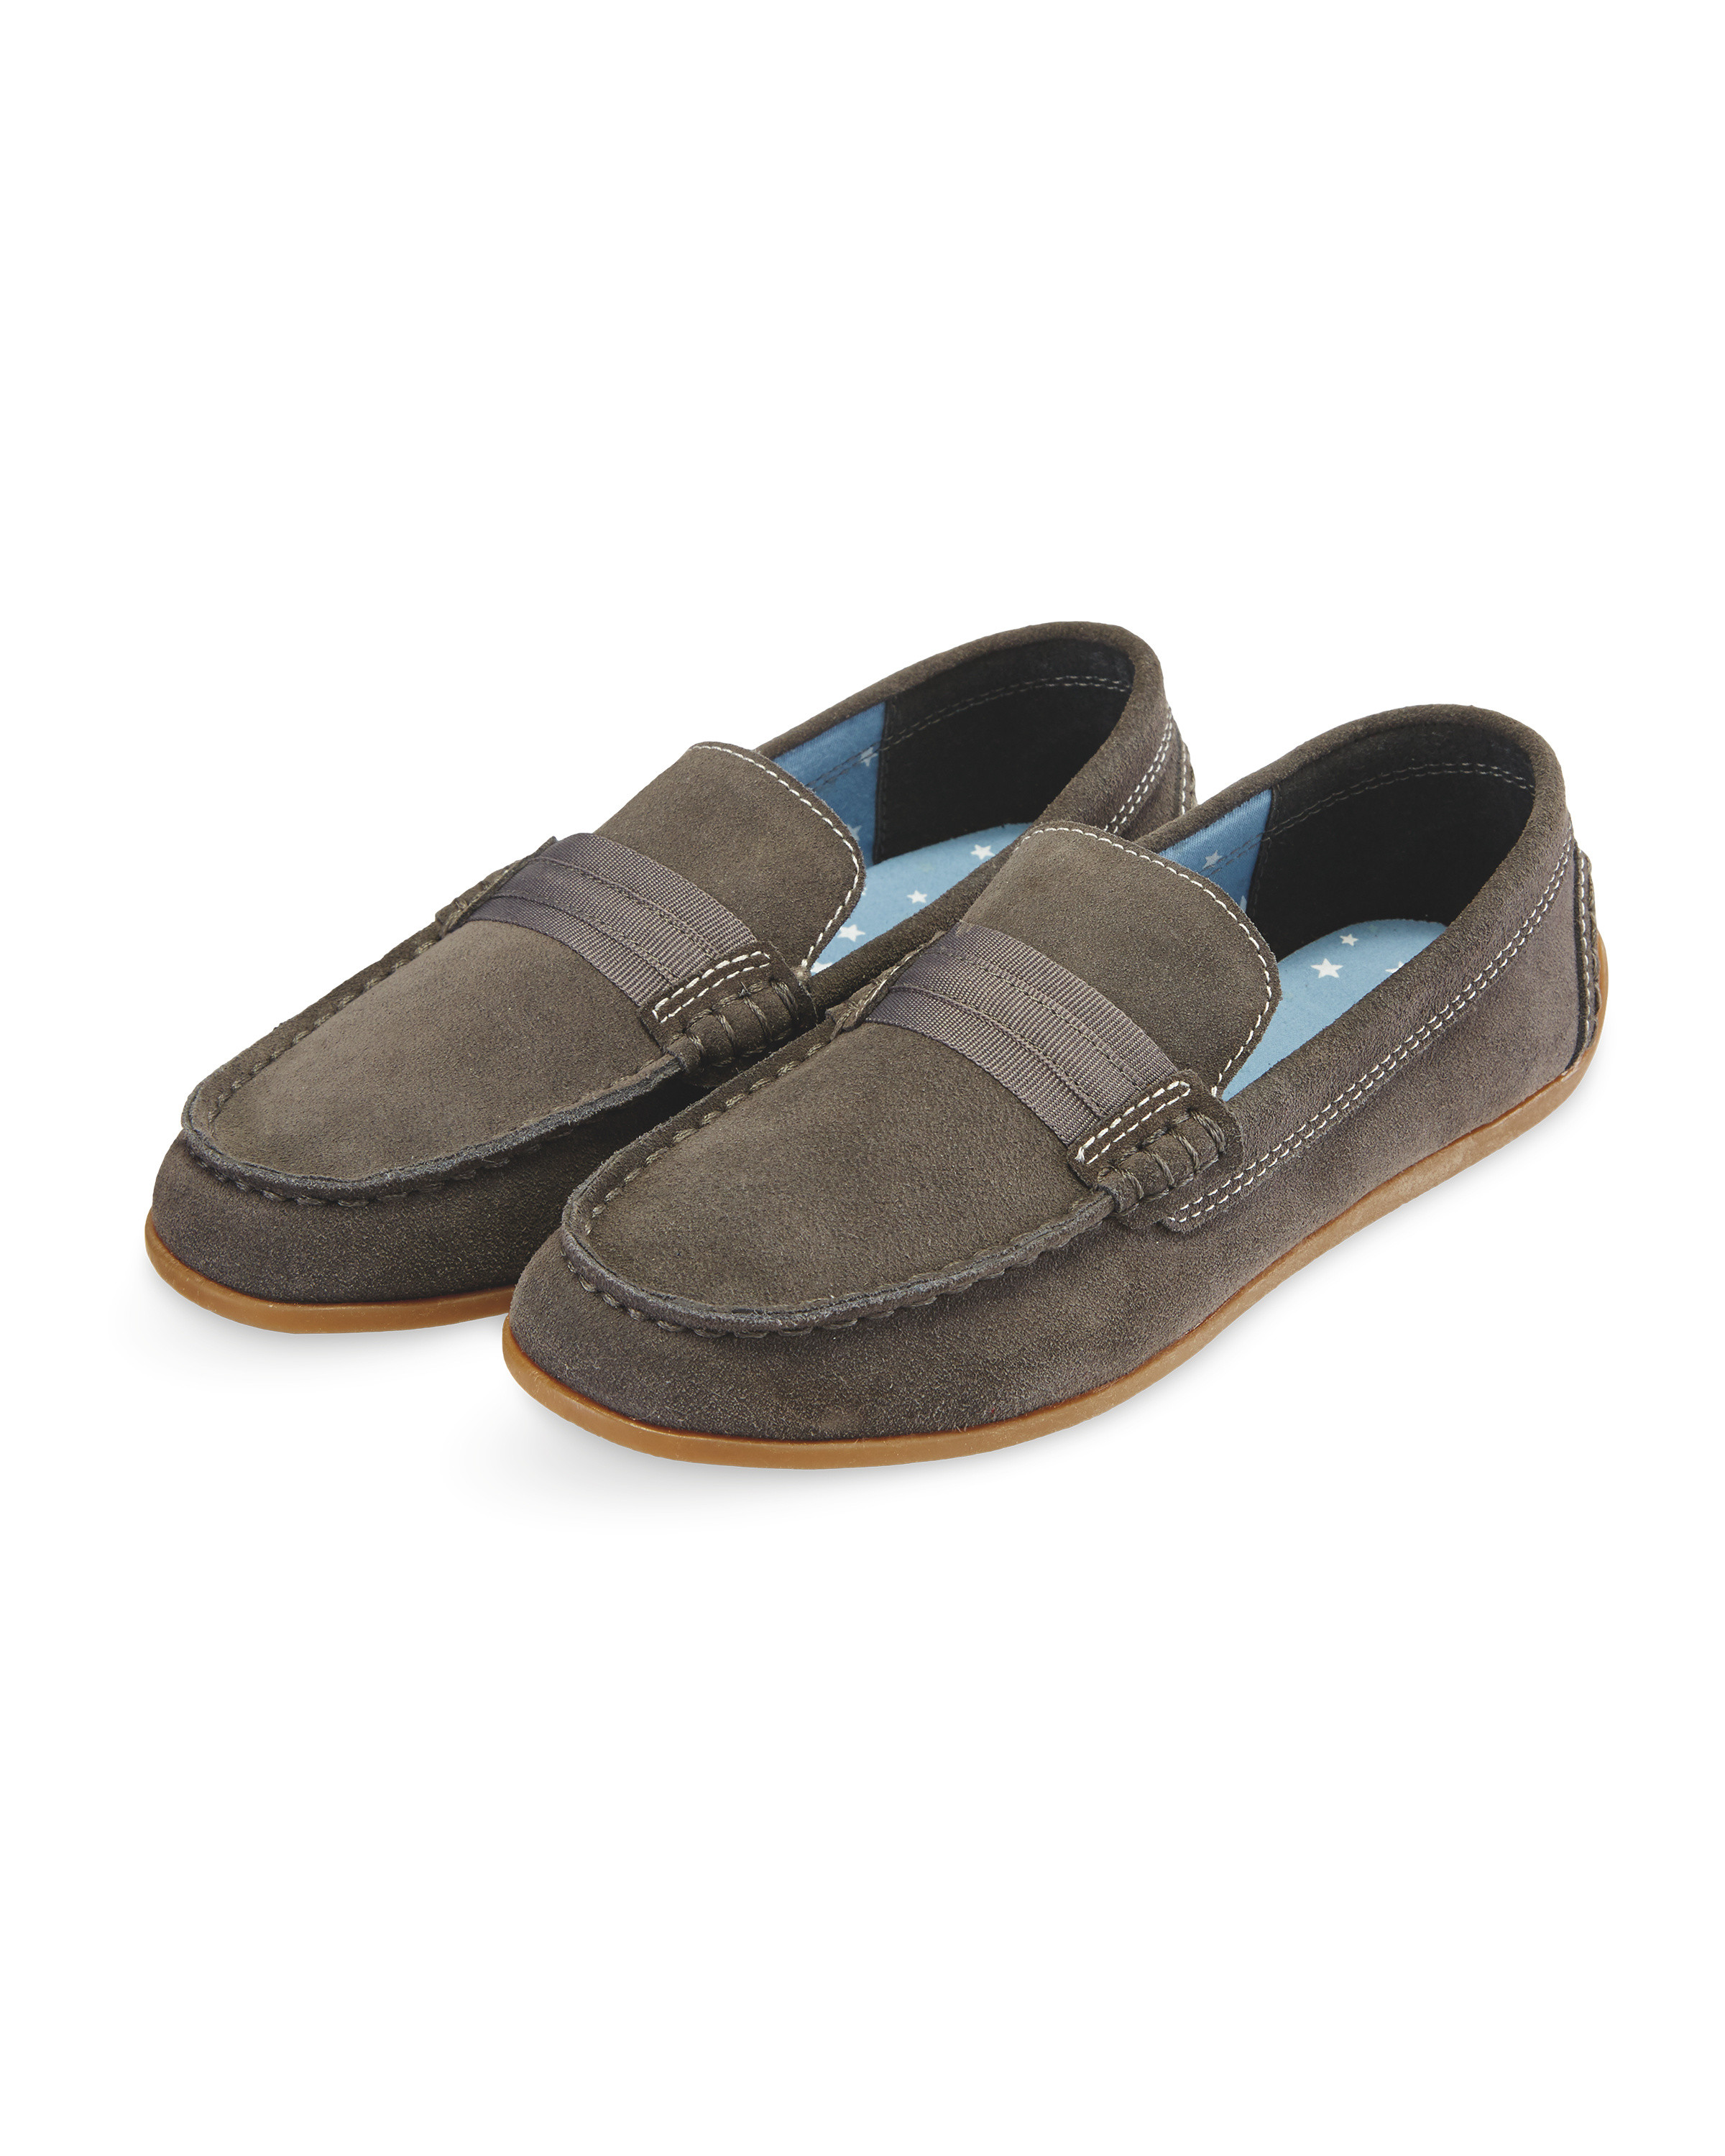 cd502bd208c97 Lily & Dan Boys' Driver Shoes - ALDI UK